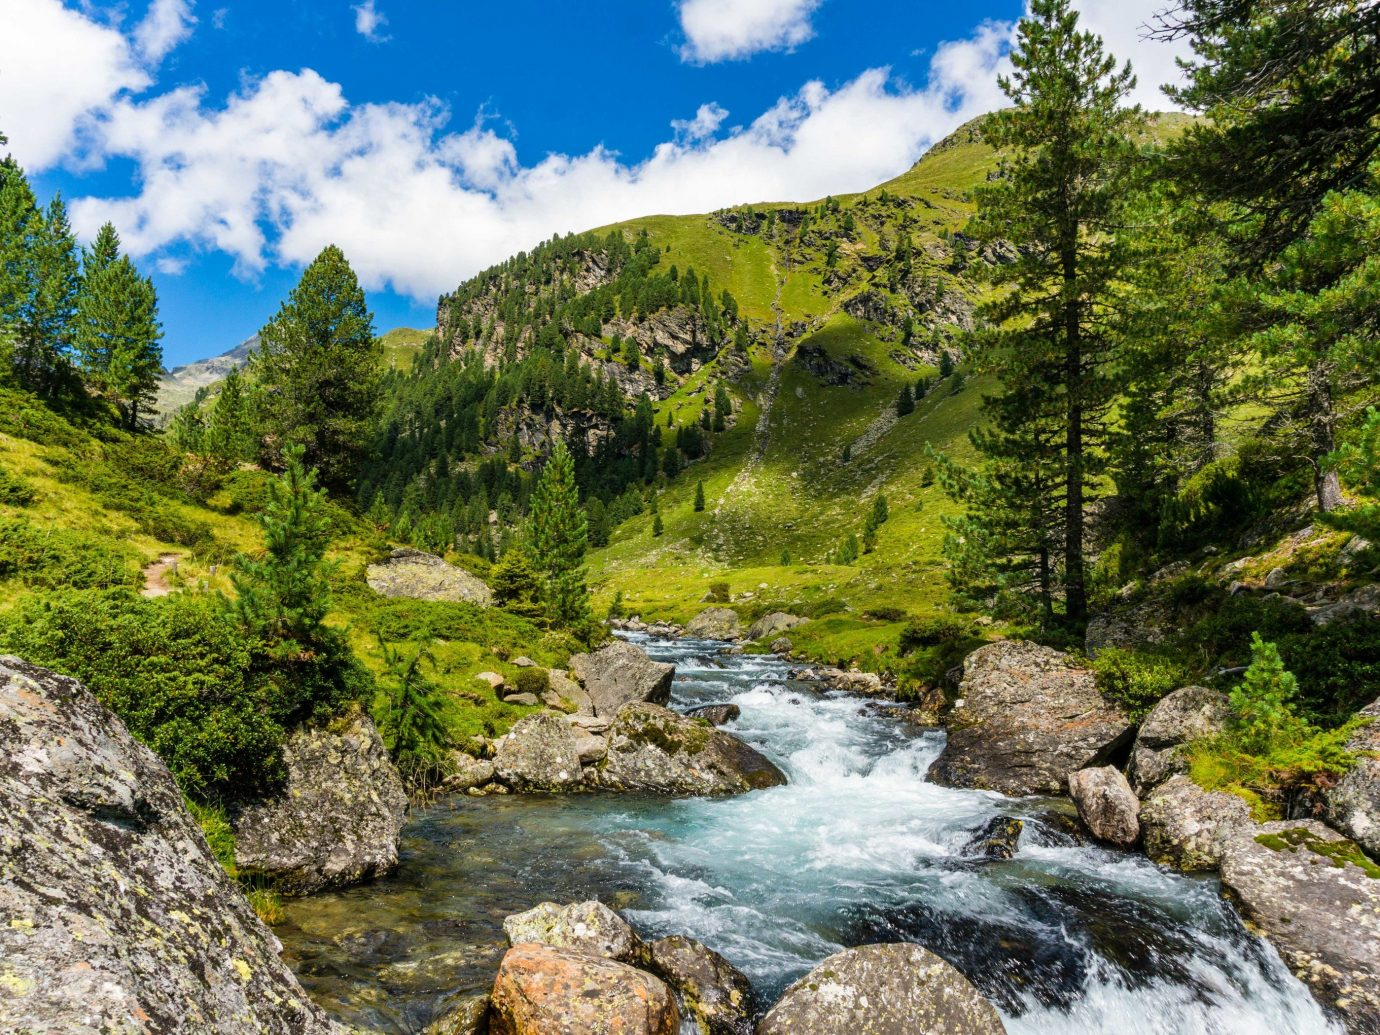 Lakes + Rivers Outdoors + Adventure outdoor tree rock water Nature stream mountainous landforms mountain wilderness rocky nature reserve vegetation River watercourse sky leaf mount scenery water resources landscape national park creek mountain range valley plant biome arroyo fluvial landforms of streams Lake rapid water feature hillside riparian zone bank grass ravine alps hill Forest stream bed old growth forest